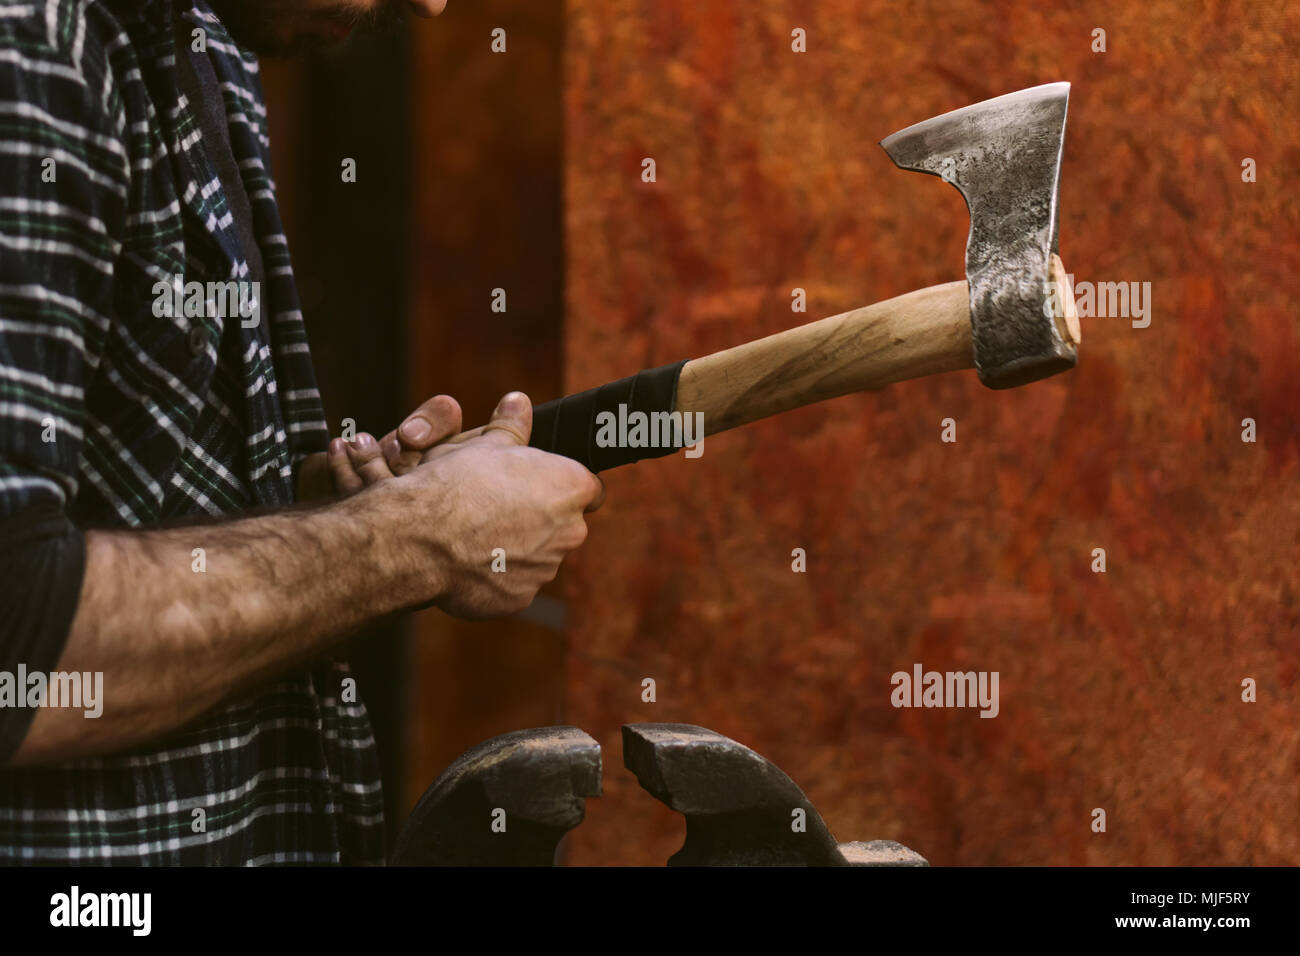 Man working in carpentry workshop. He makes leather winding on wooden ax handle. Men at work. Hand work. - Stock Image